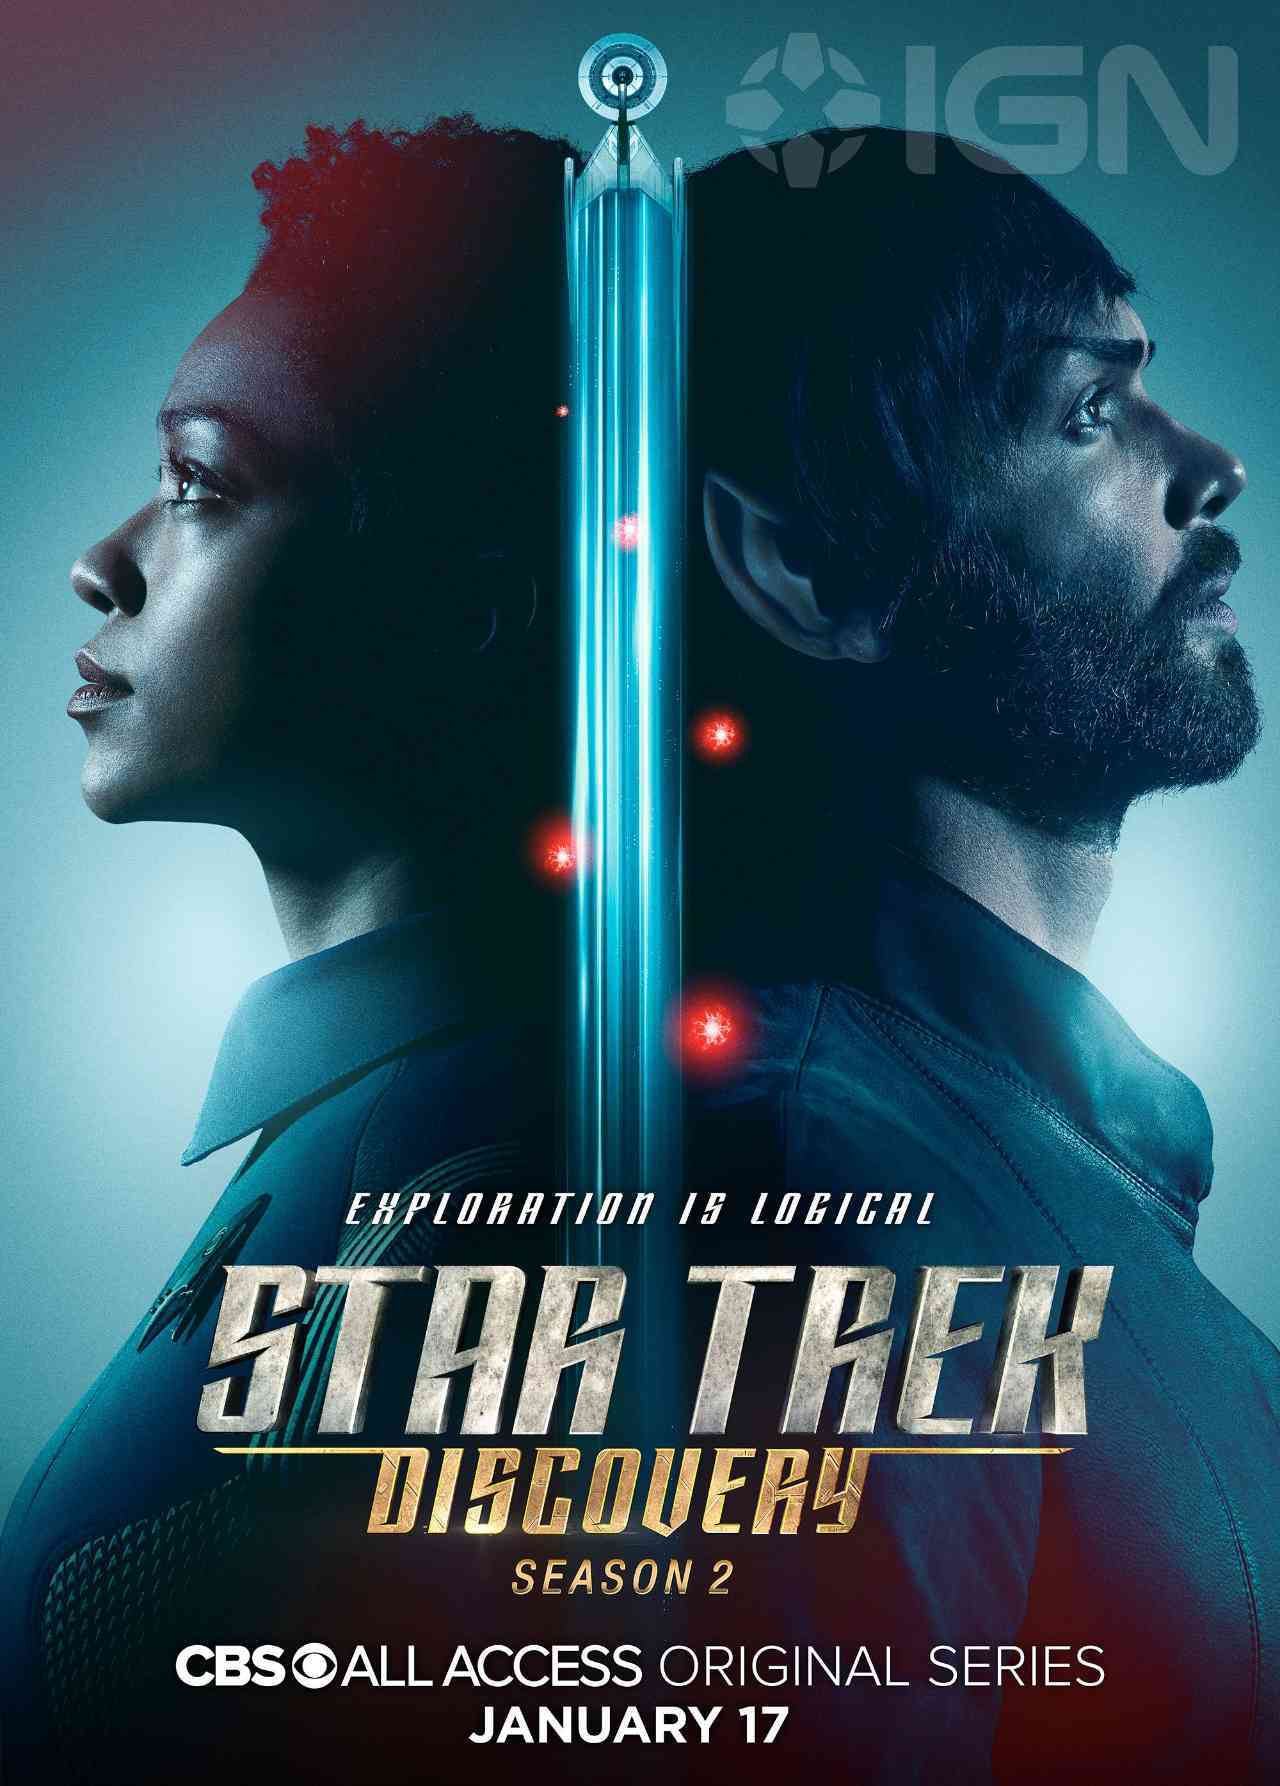 Star Trek: Discovery Season 2 Character Posters Reunite The Crew